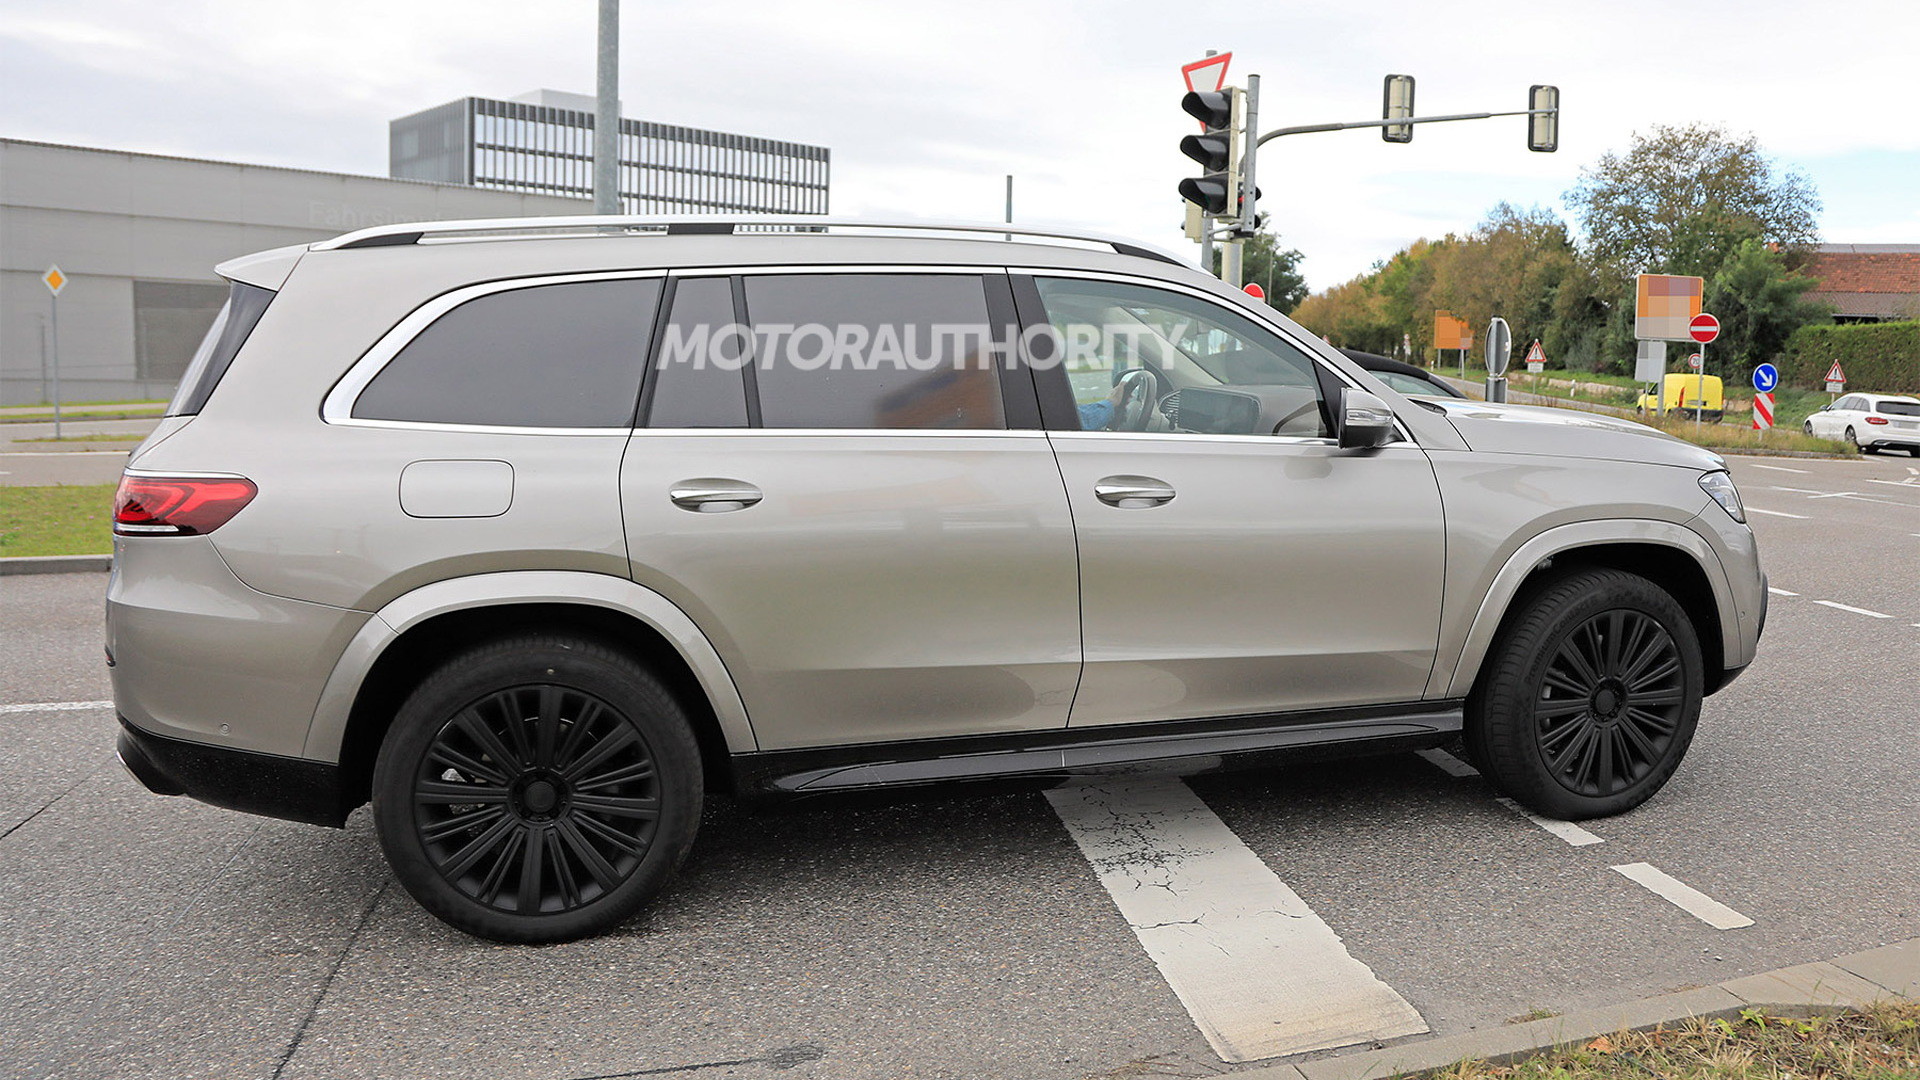 2021 Mercedes-Maybach GLS spy shots - Photo credit: S. Baldauf/SB-Medien